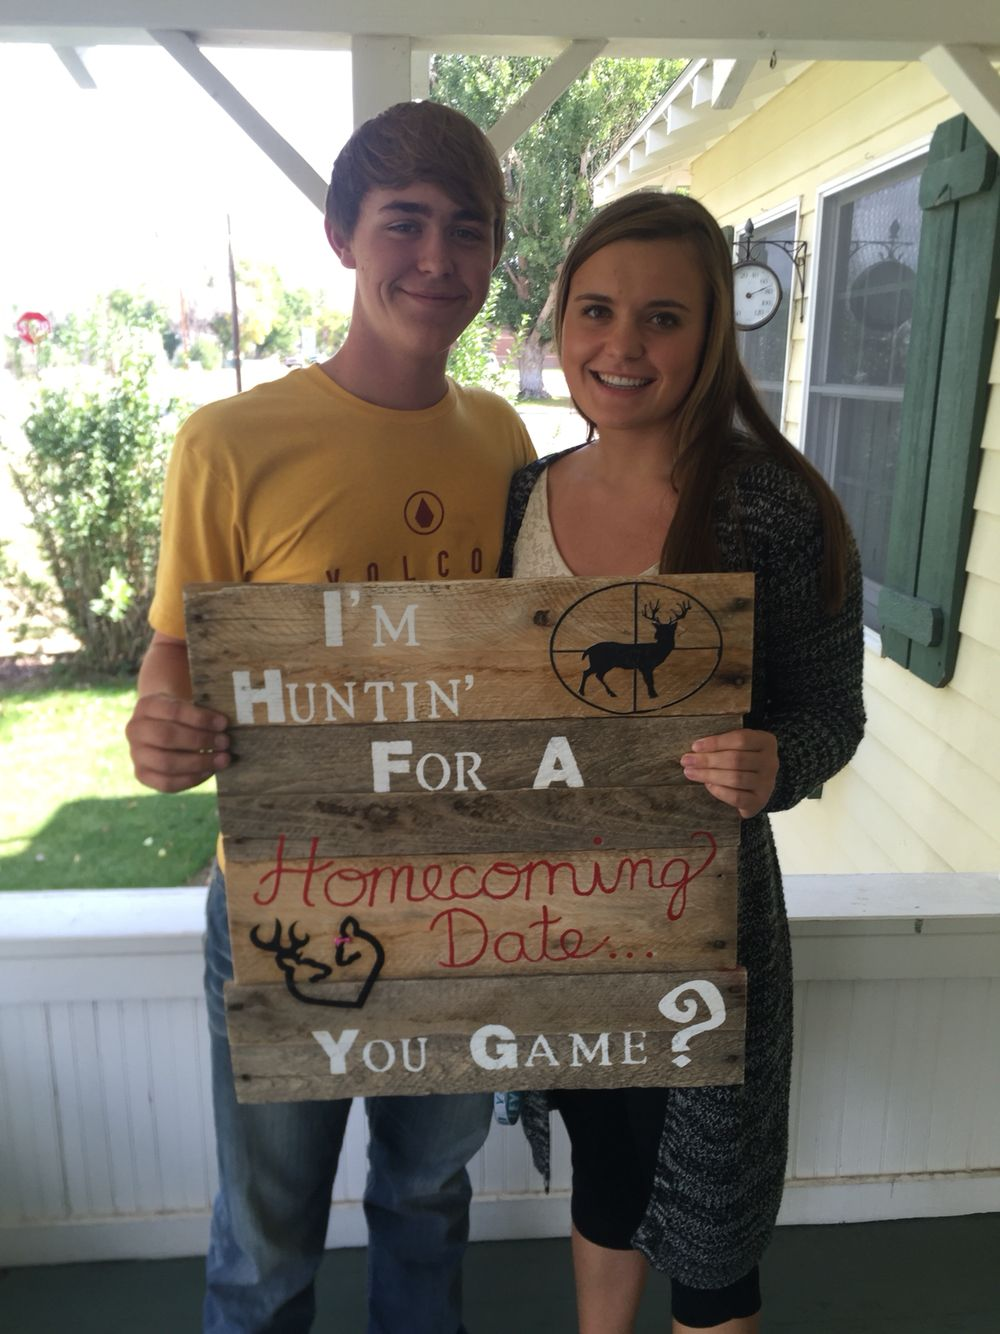 Homecoming sign.  He asked his girlfriend with this hunting sign.